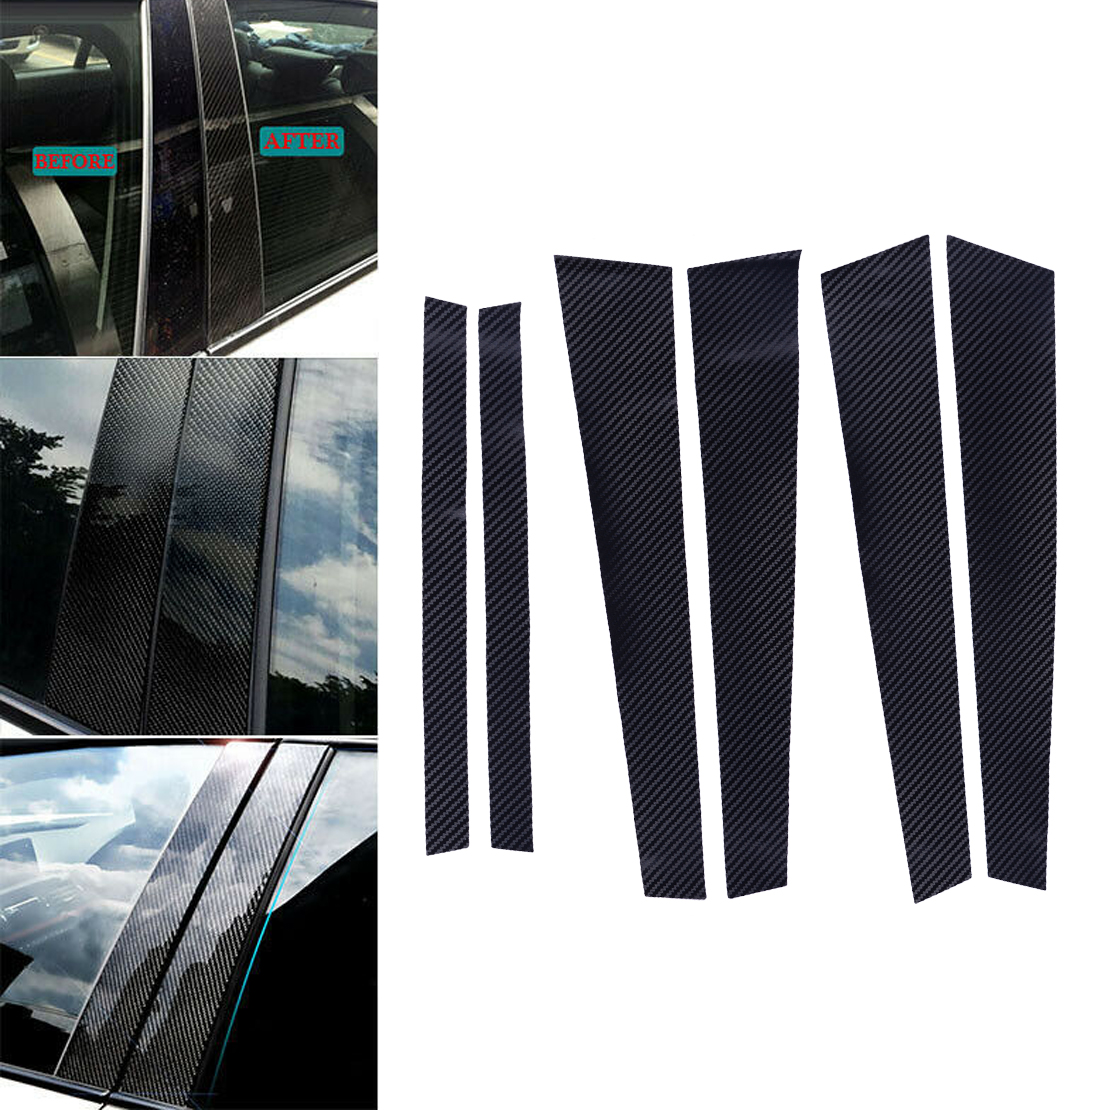 CITALL Carbon Fiber Style B Pillars Column Trim Cover Sticker Fit For BMW 5 Series E60 2004 2005 2006 2007 2008 2009 2010